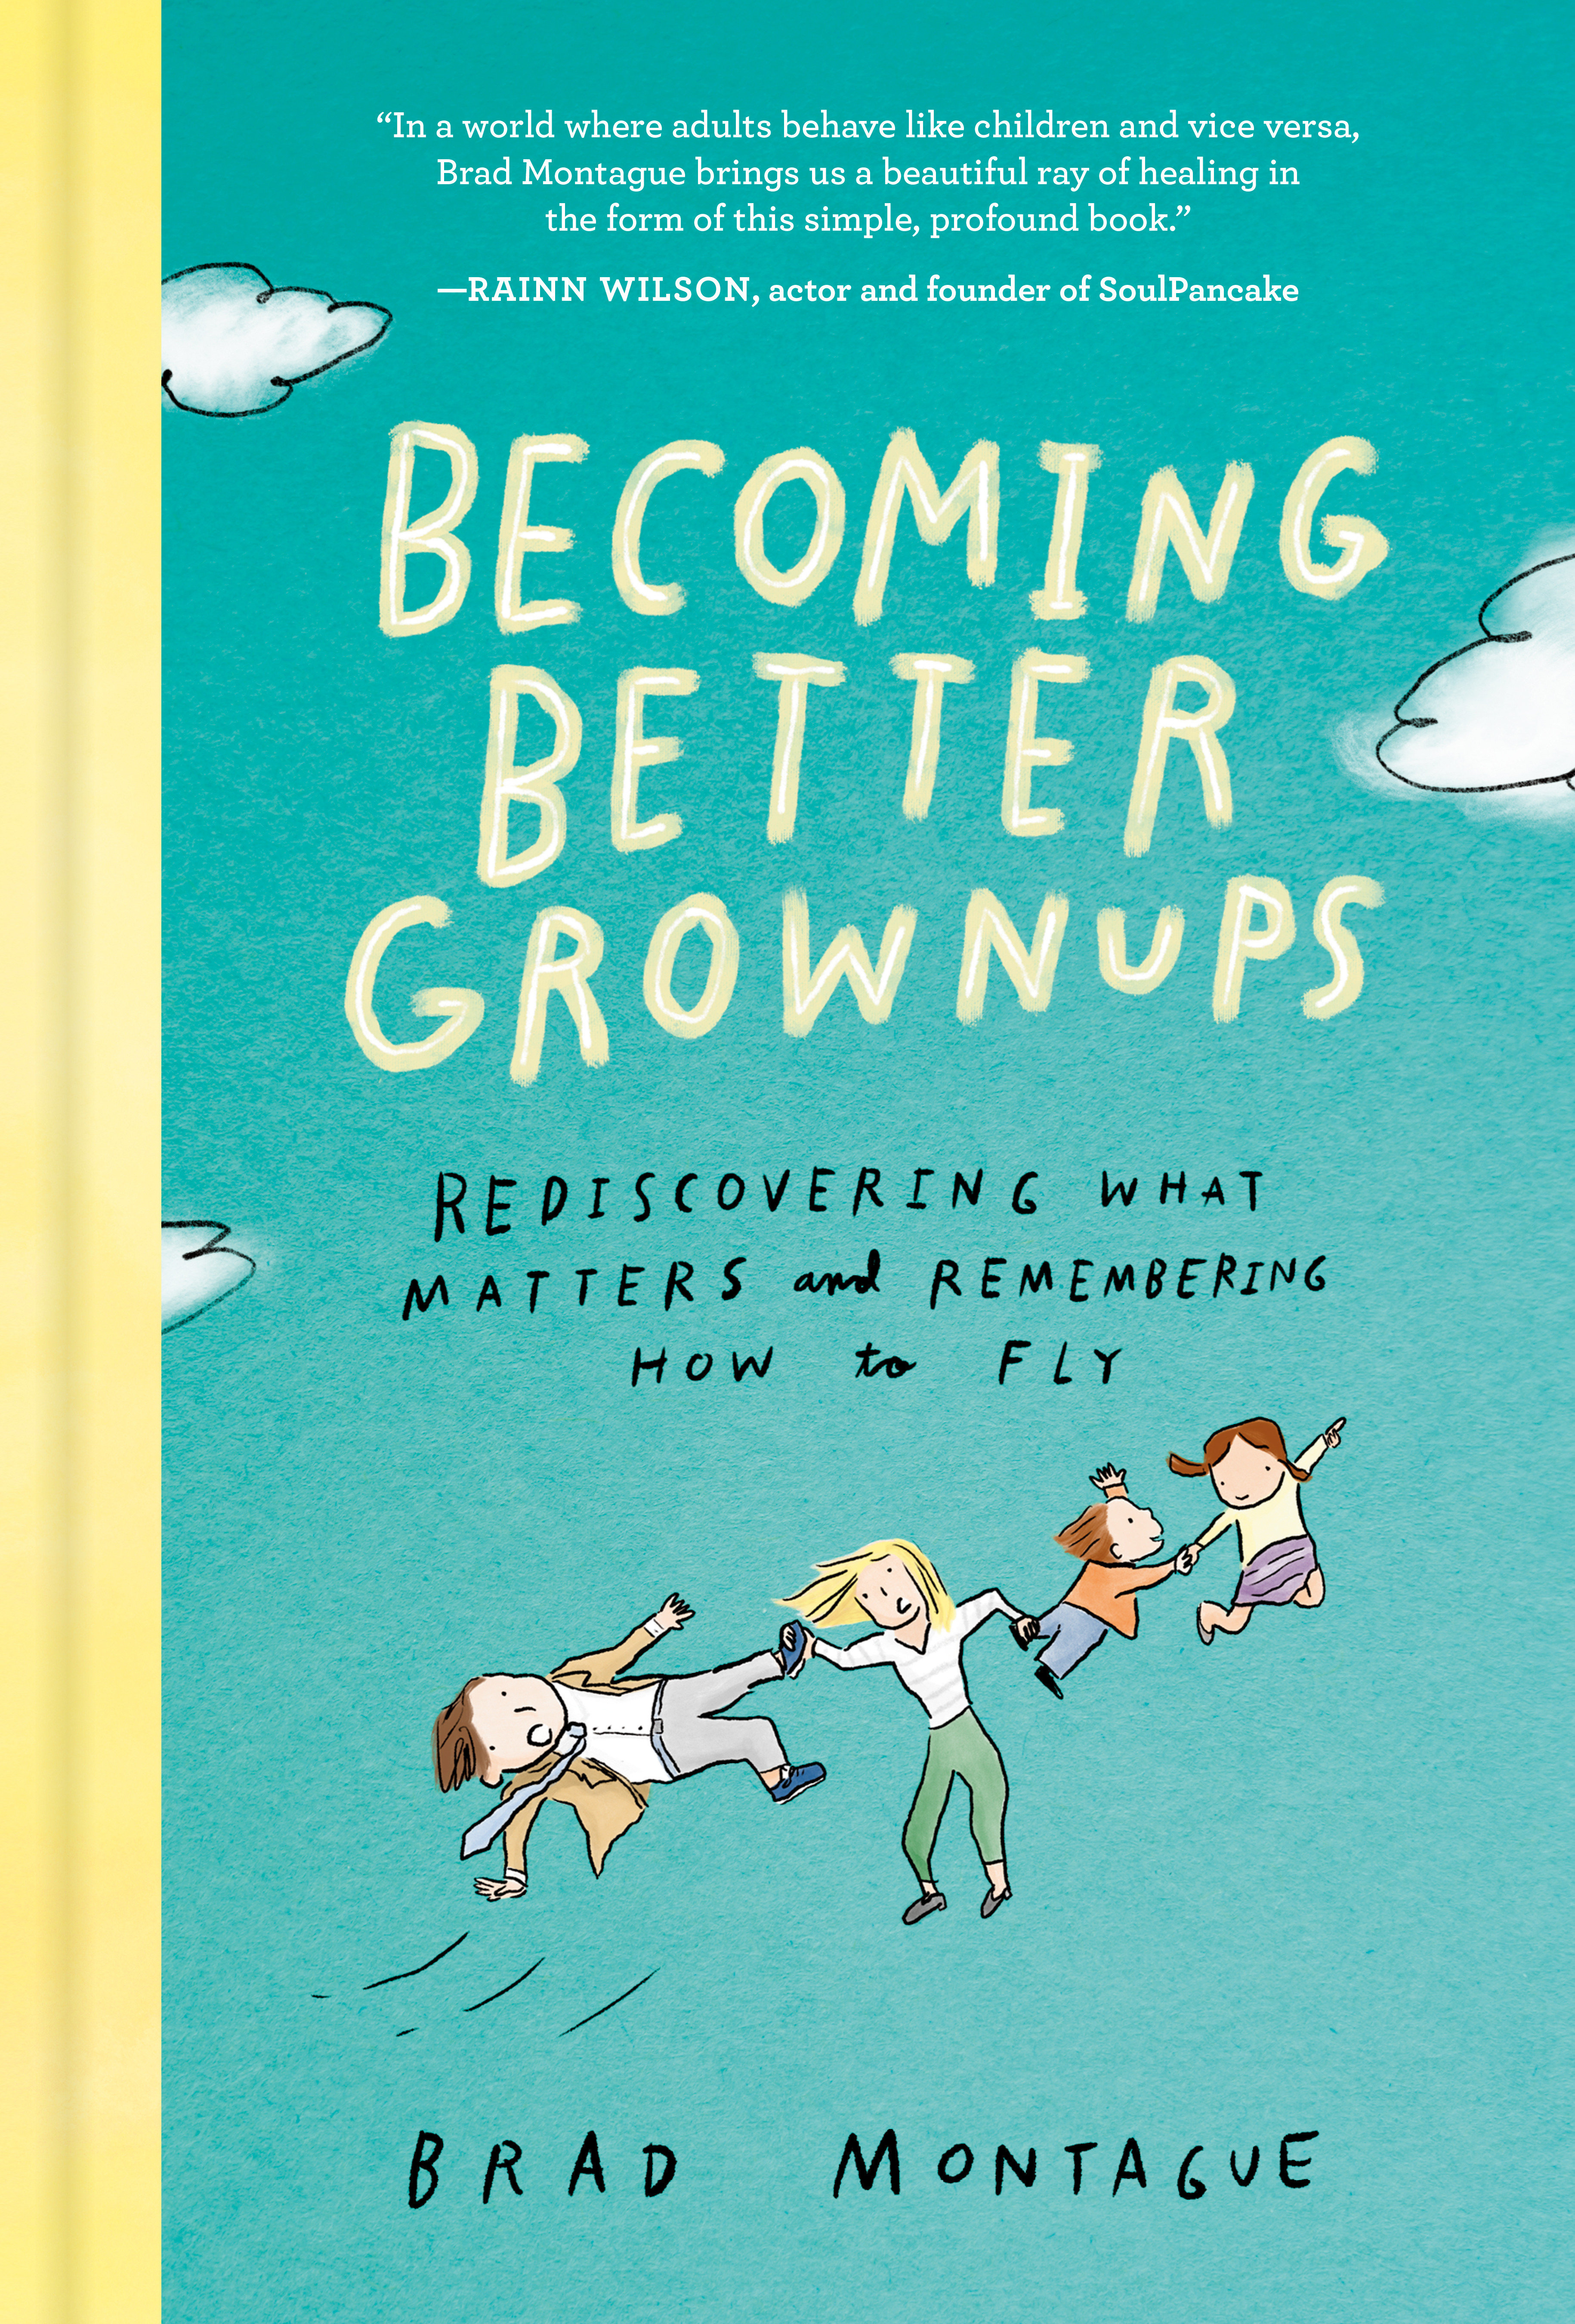 Becoming Better Grownups Rediscovering What Matters and Remembering How to Fly